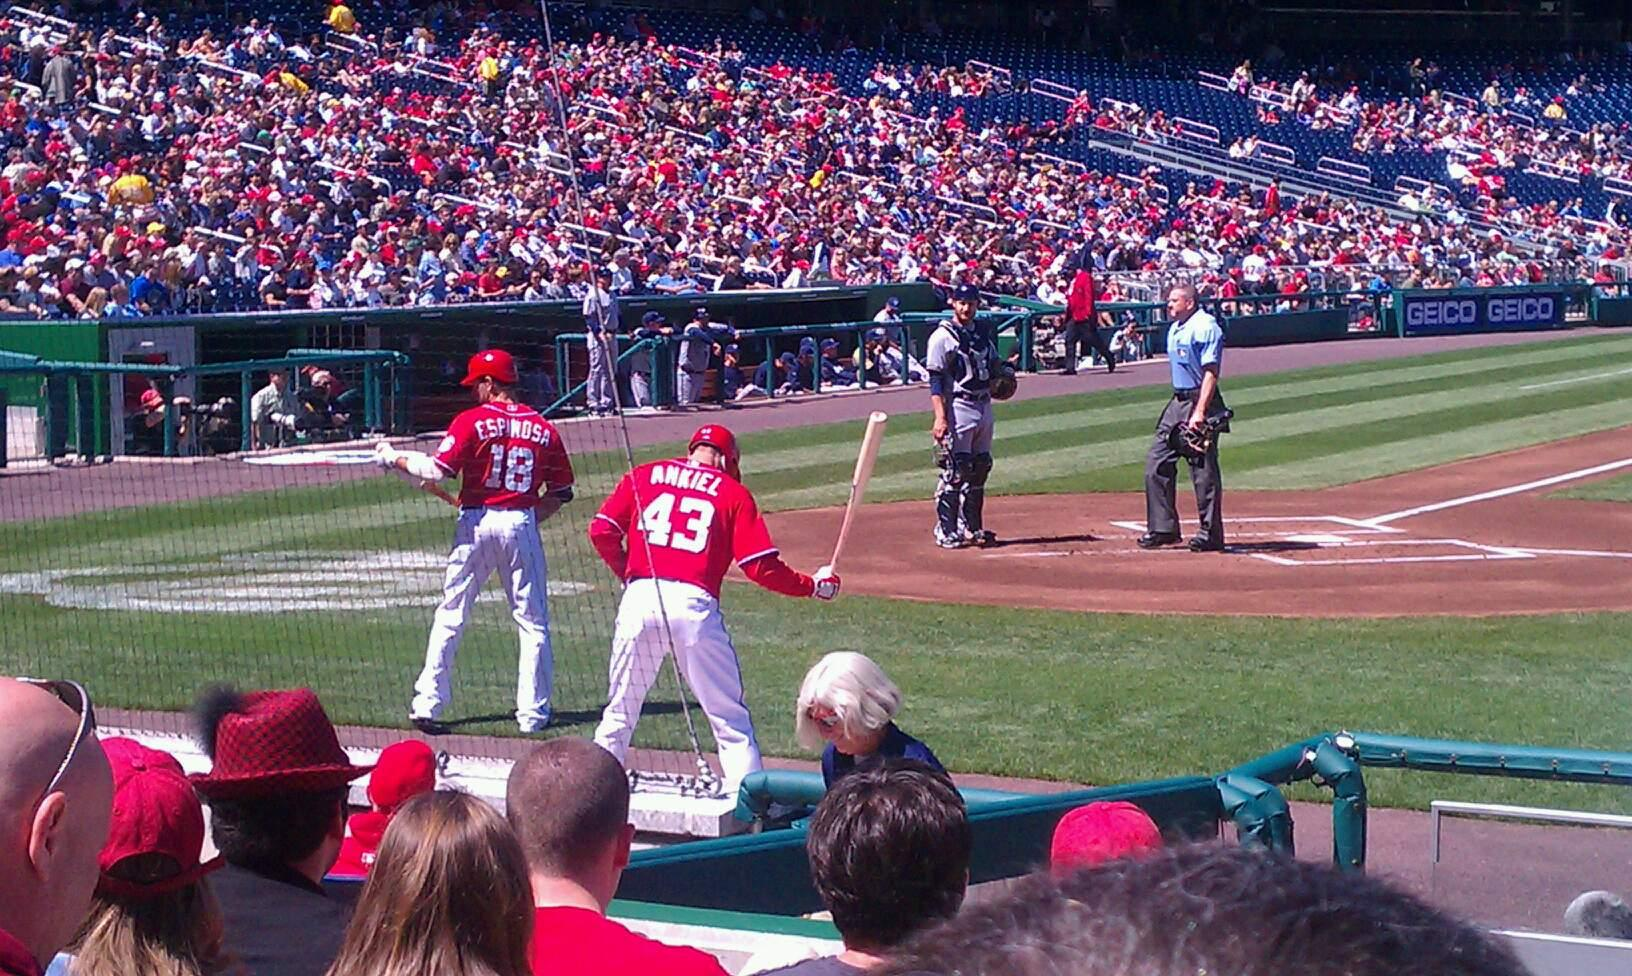 Nationals Park Section 128 Row K Seat 15